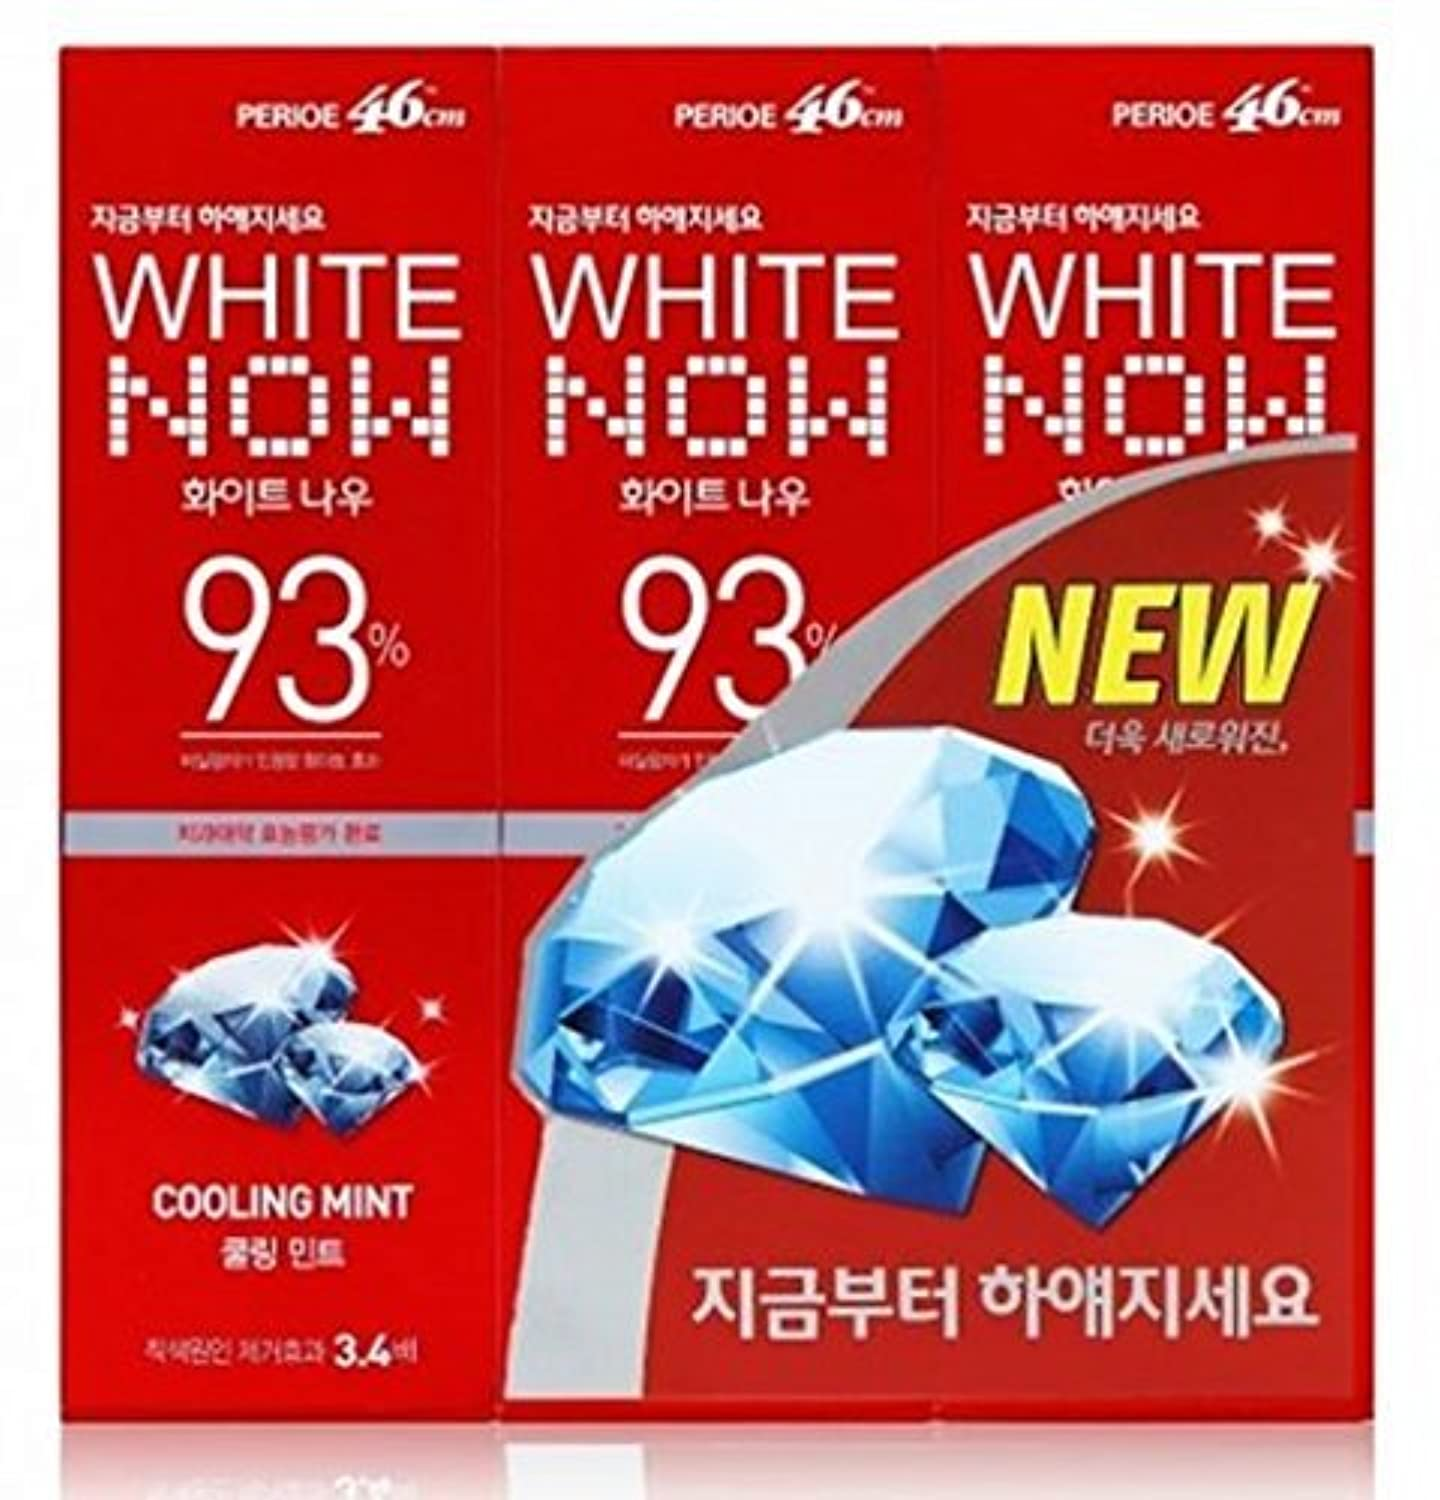 Lg Perioe 46cm Toothpaste Oral Care White Now 93% Cooling Mint 100g X 3 by perioe